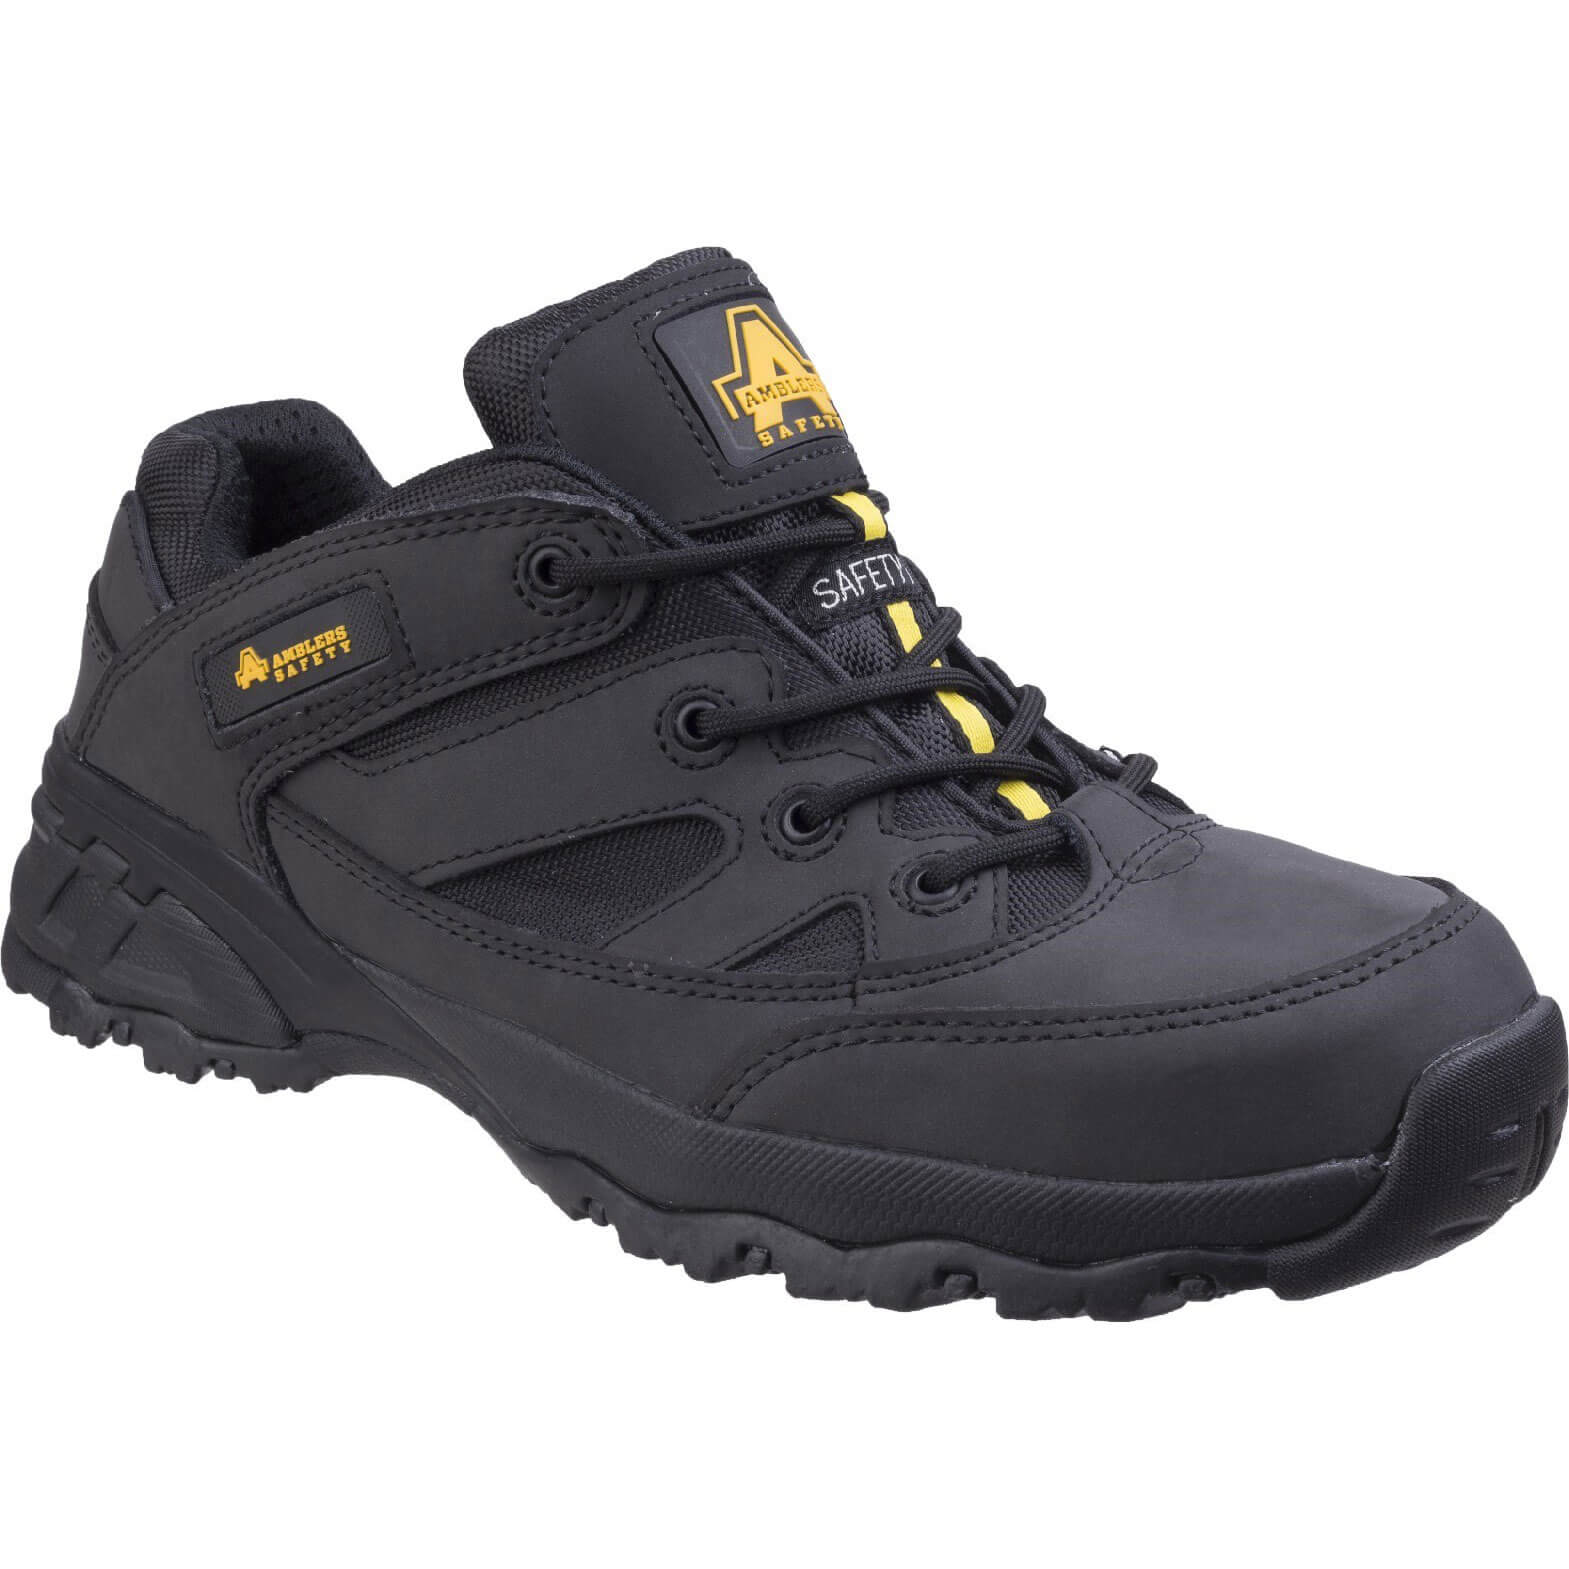 CHEAP Amblers Safety FS68C Fully Composite Metal Free Safety Trainer Black Size 9 – Men's Footwear